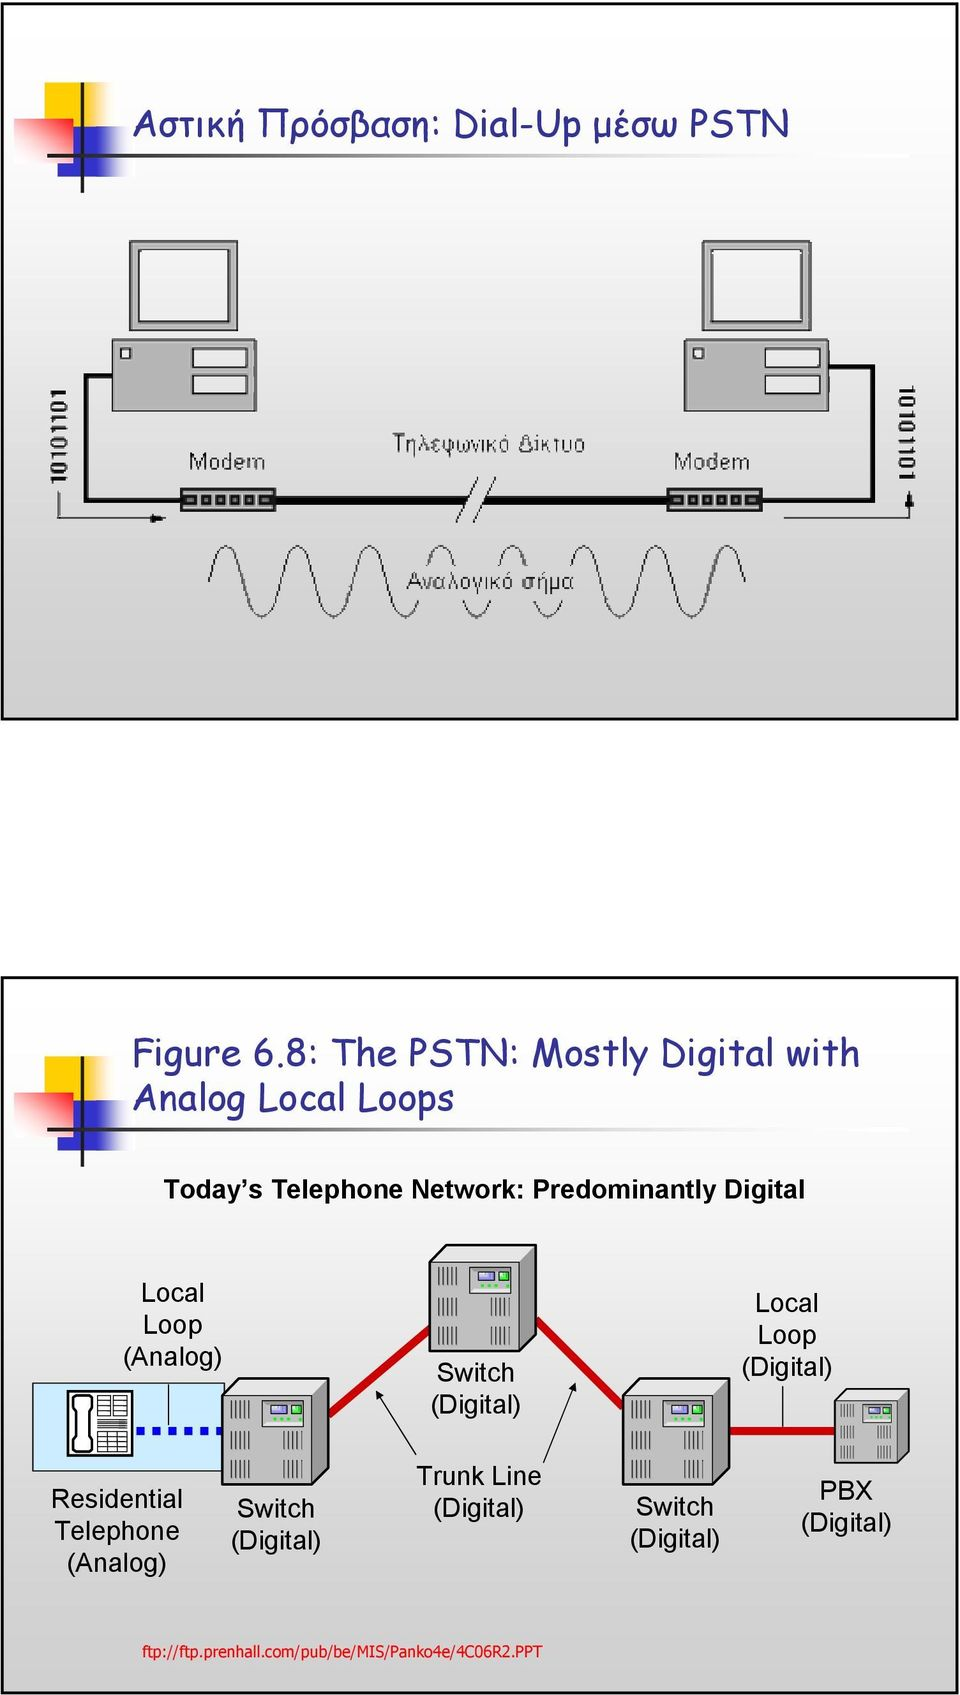 Predominantly Digital Local Loop (Analog) Switch (Digital) Local Loop (Digital)